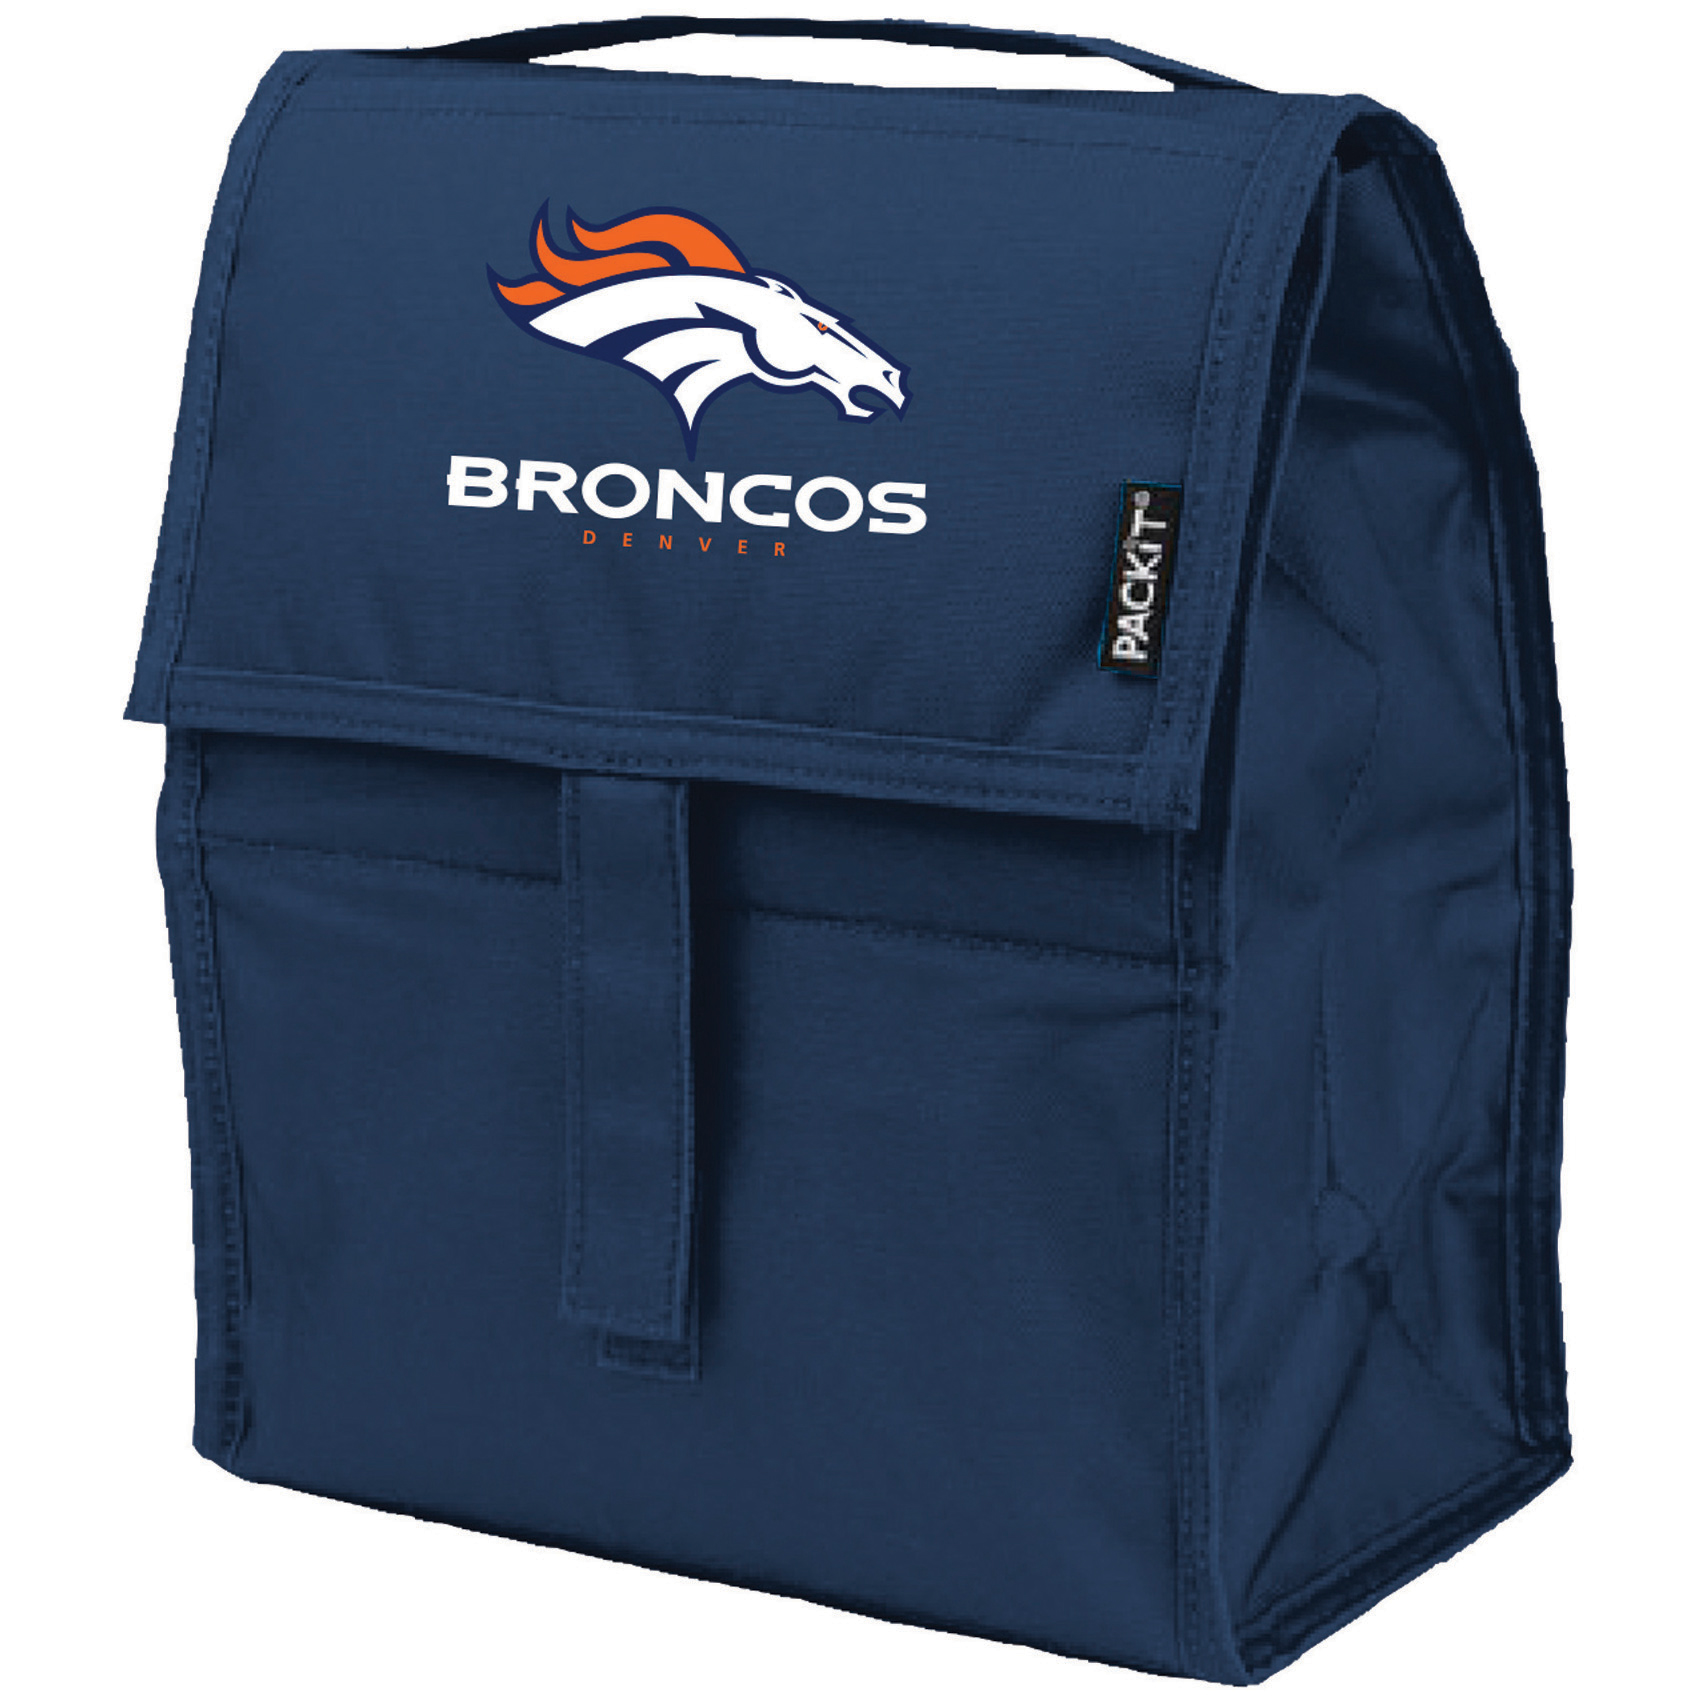 Denver Broncos PackIt Lunch Box - No Size